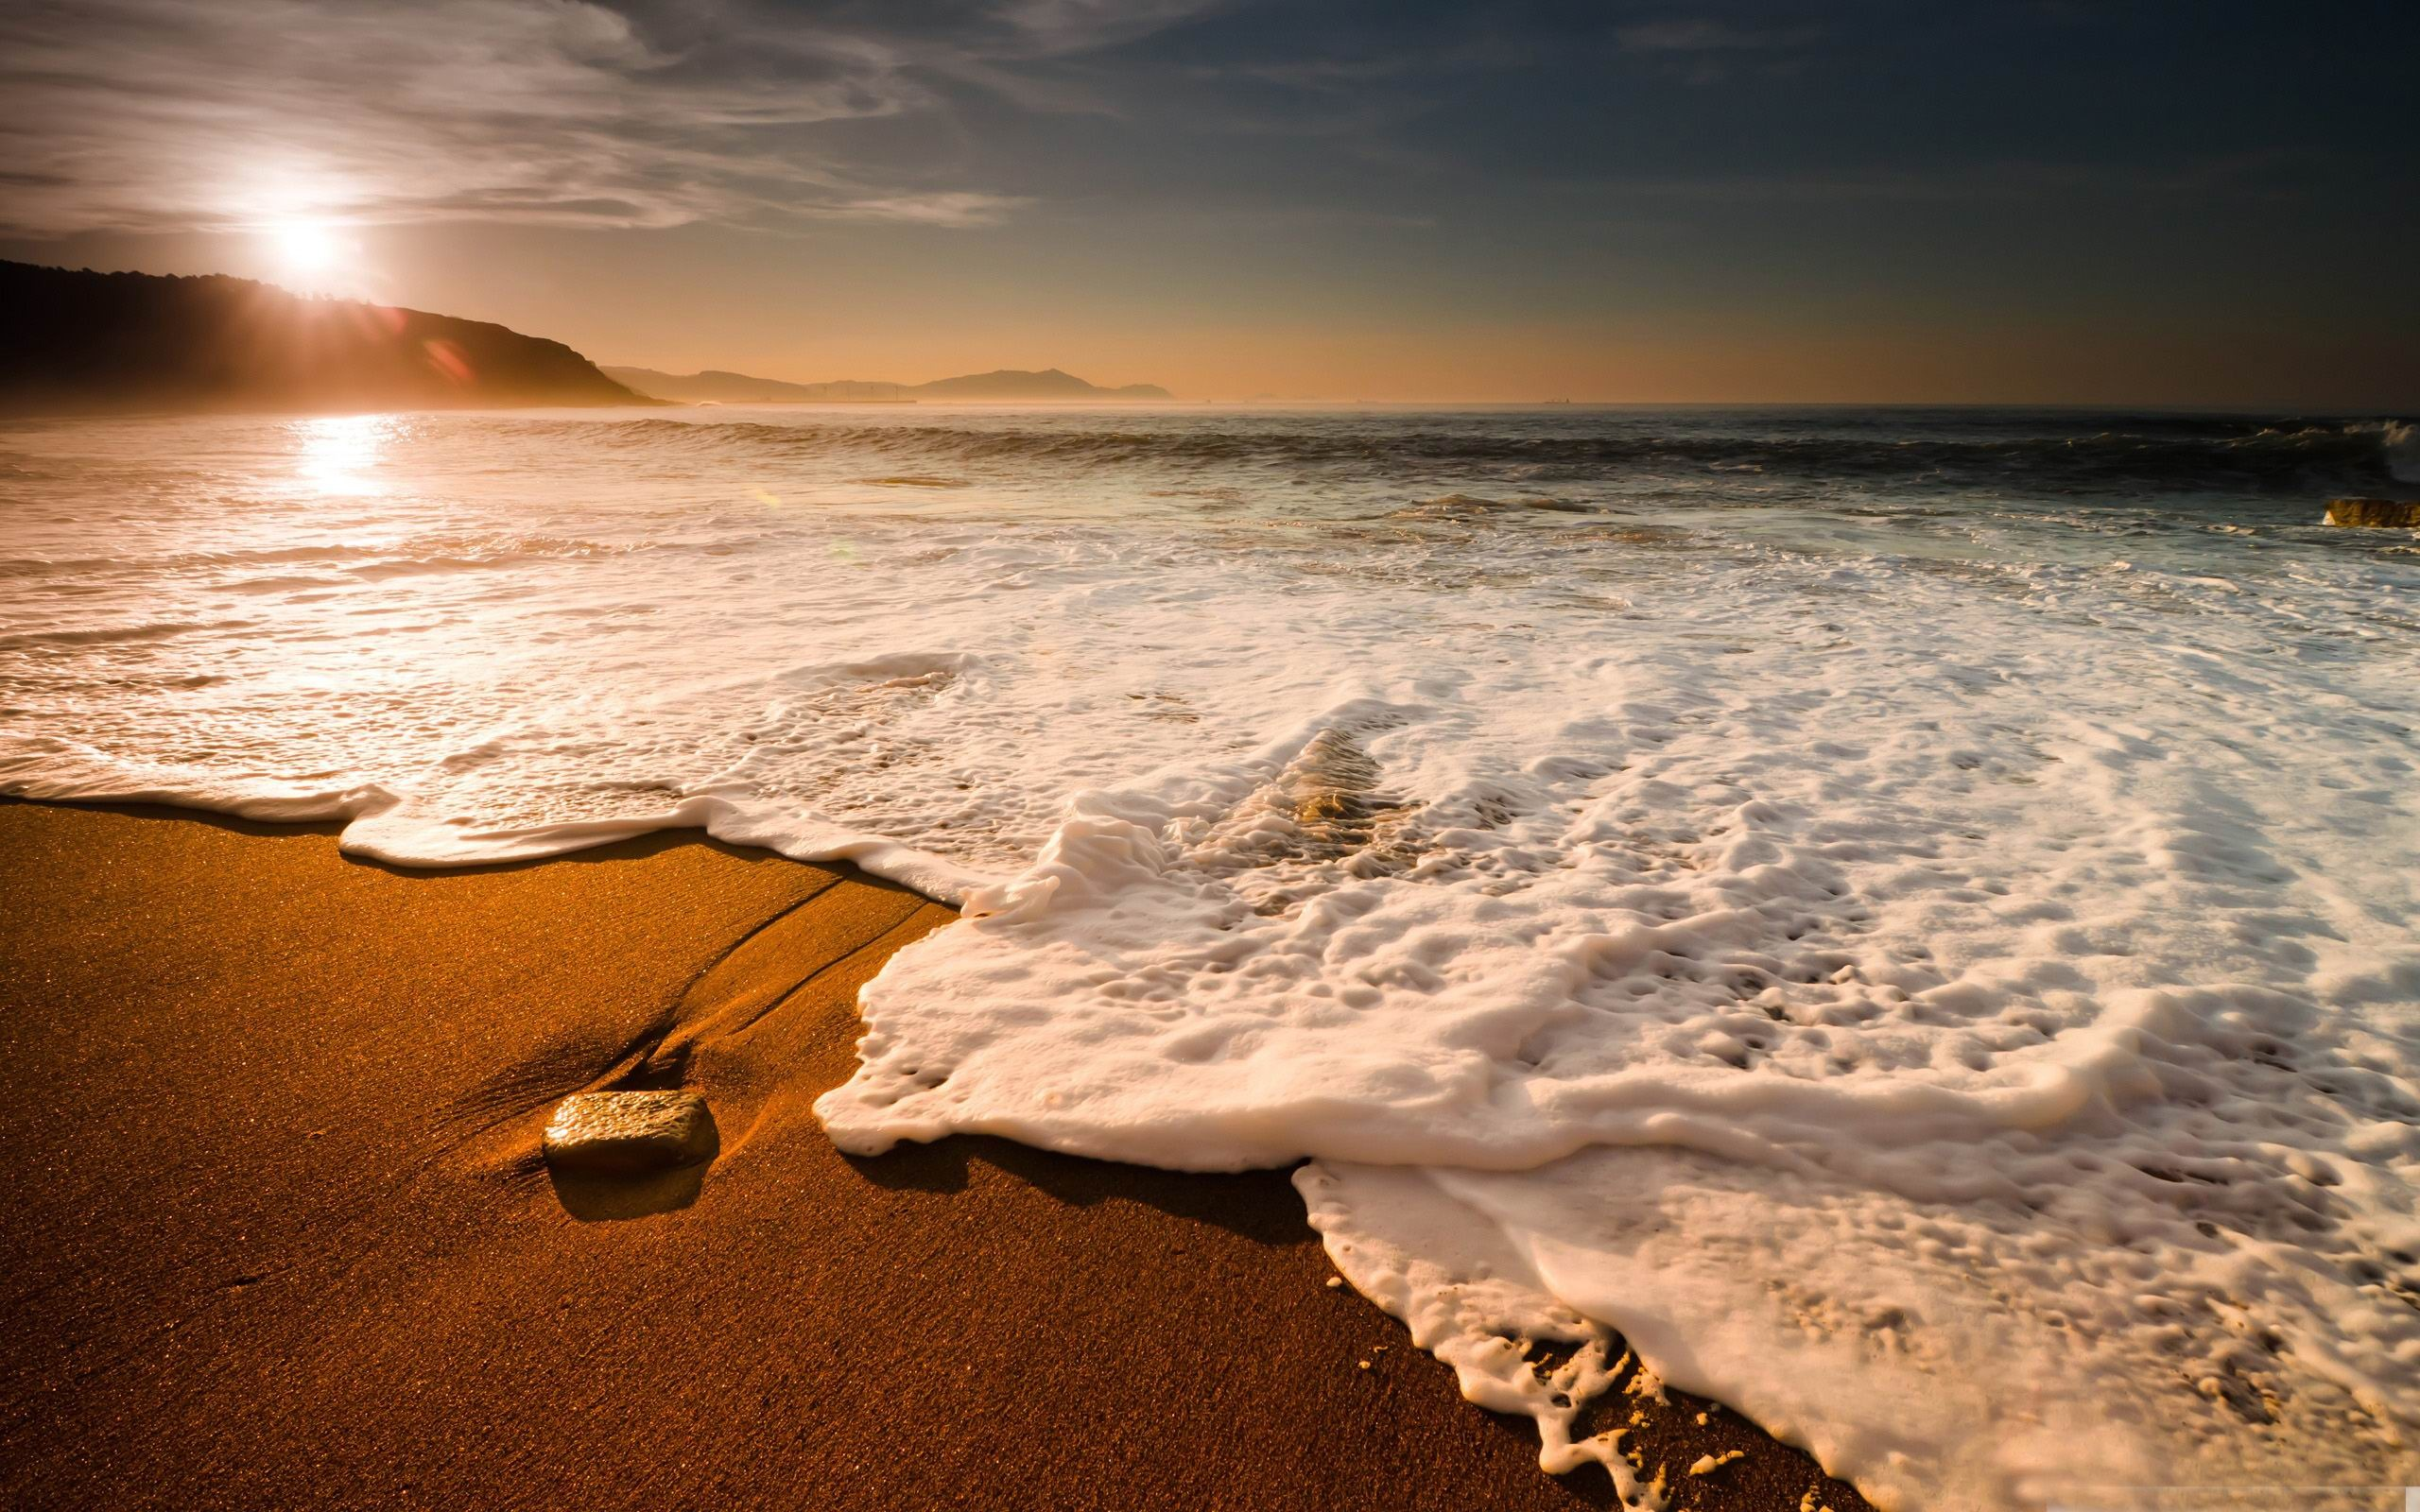 Beach Scenery Free Desktop 8 HD Wallpapers